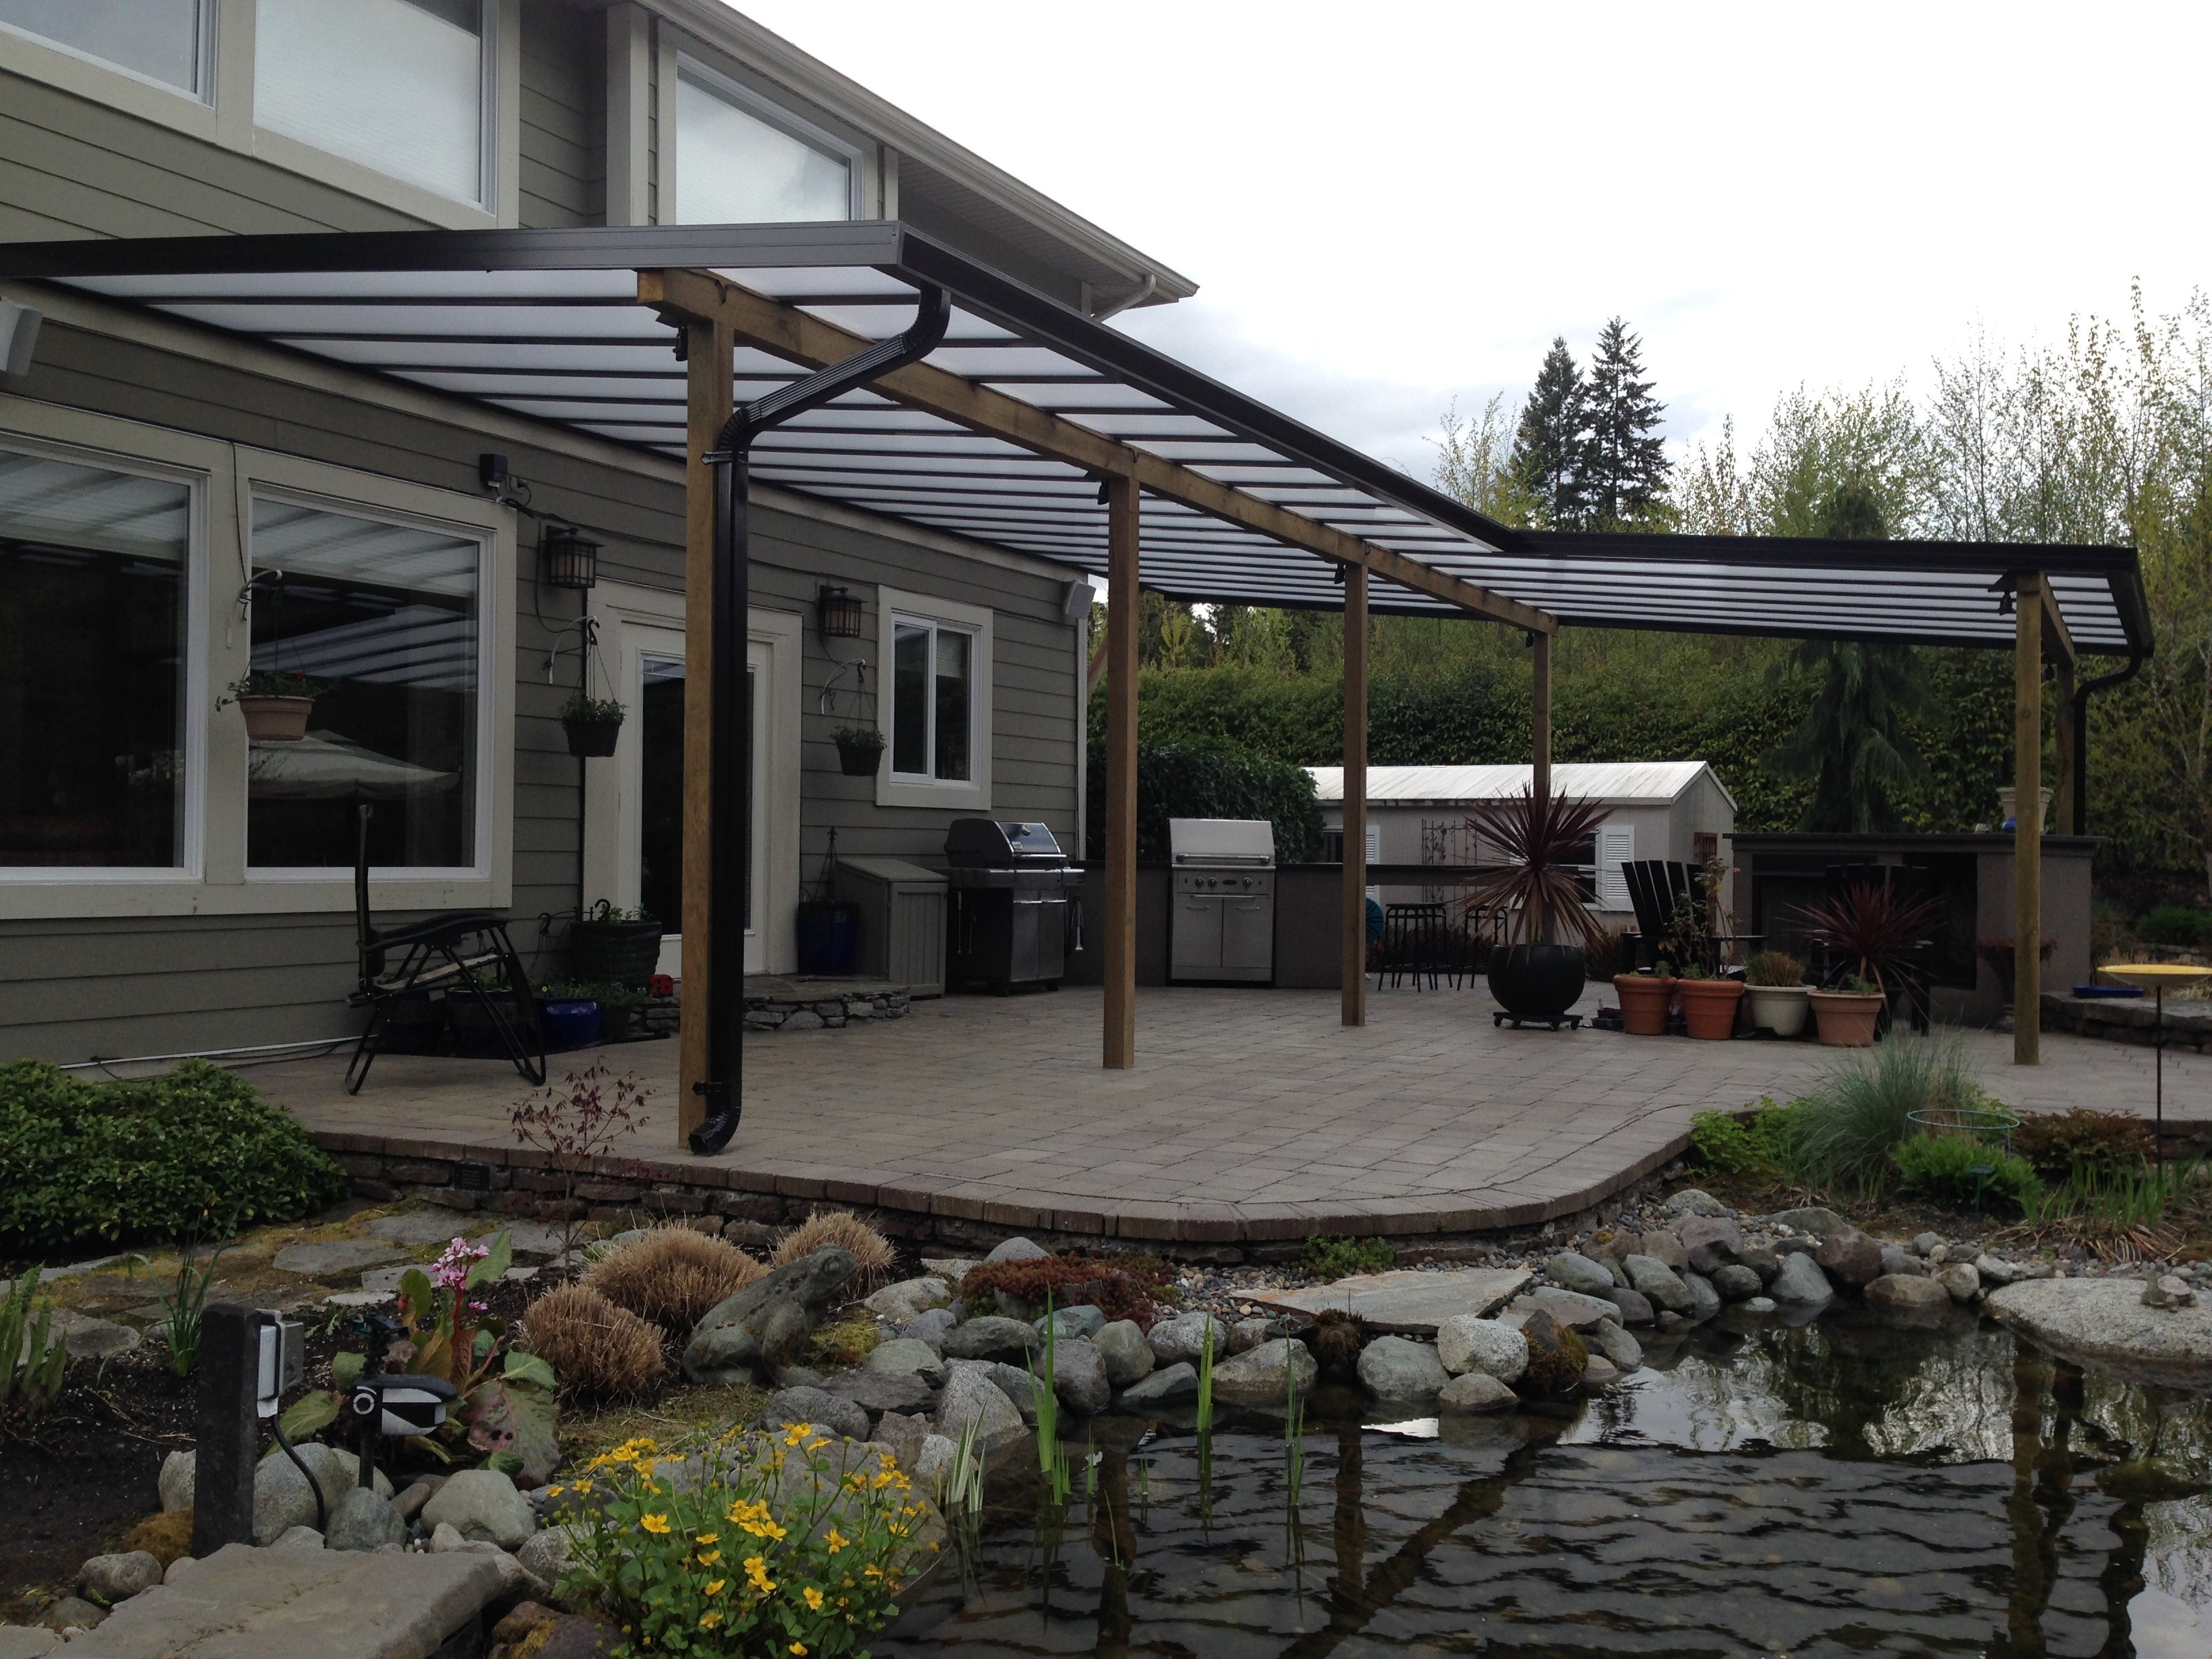 patio covers, patio coverings, deck cover, deck covering toronto, addition to patio, patio roof